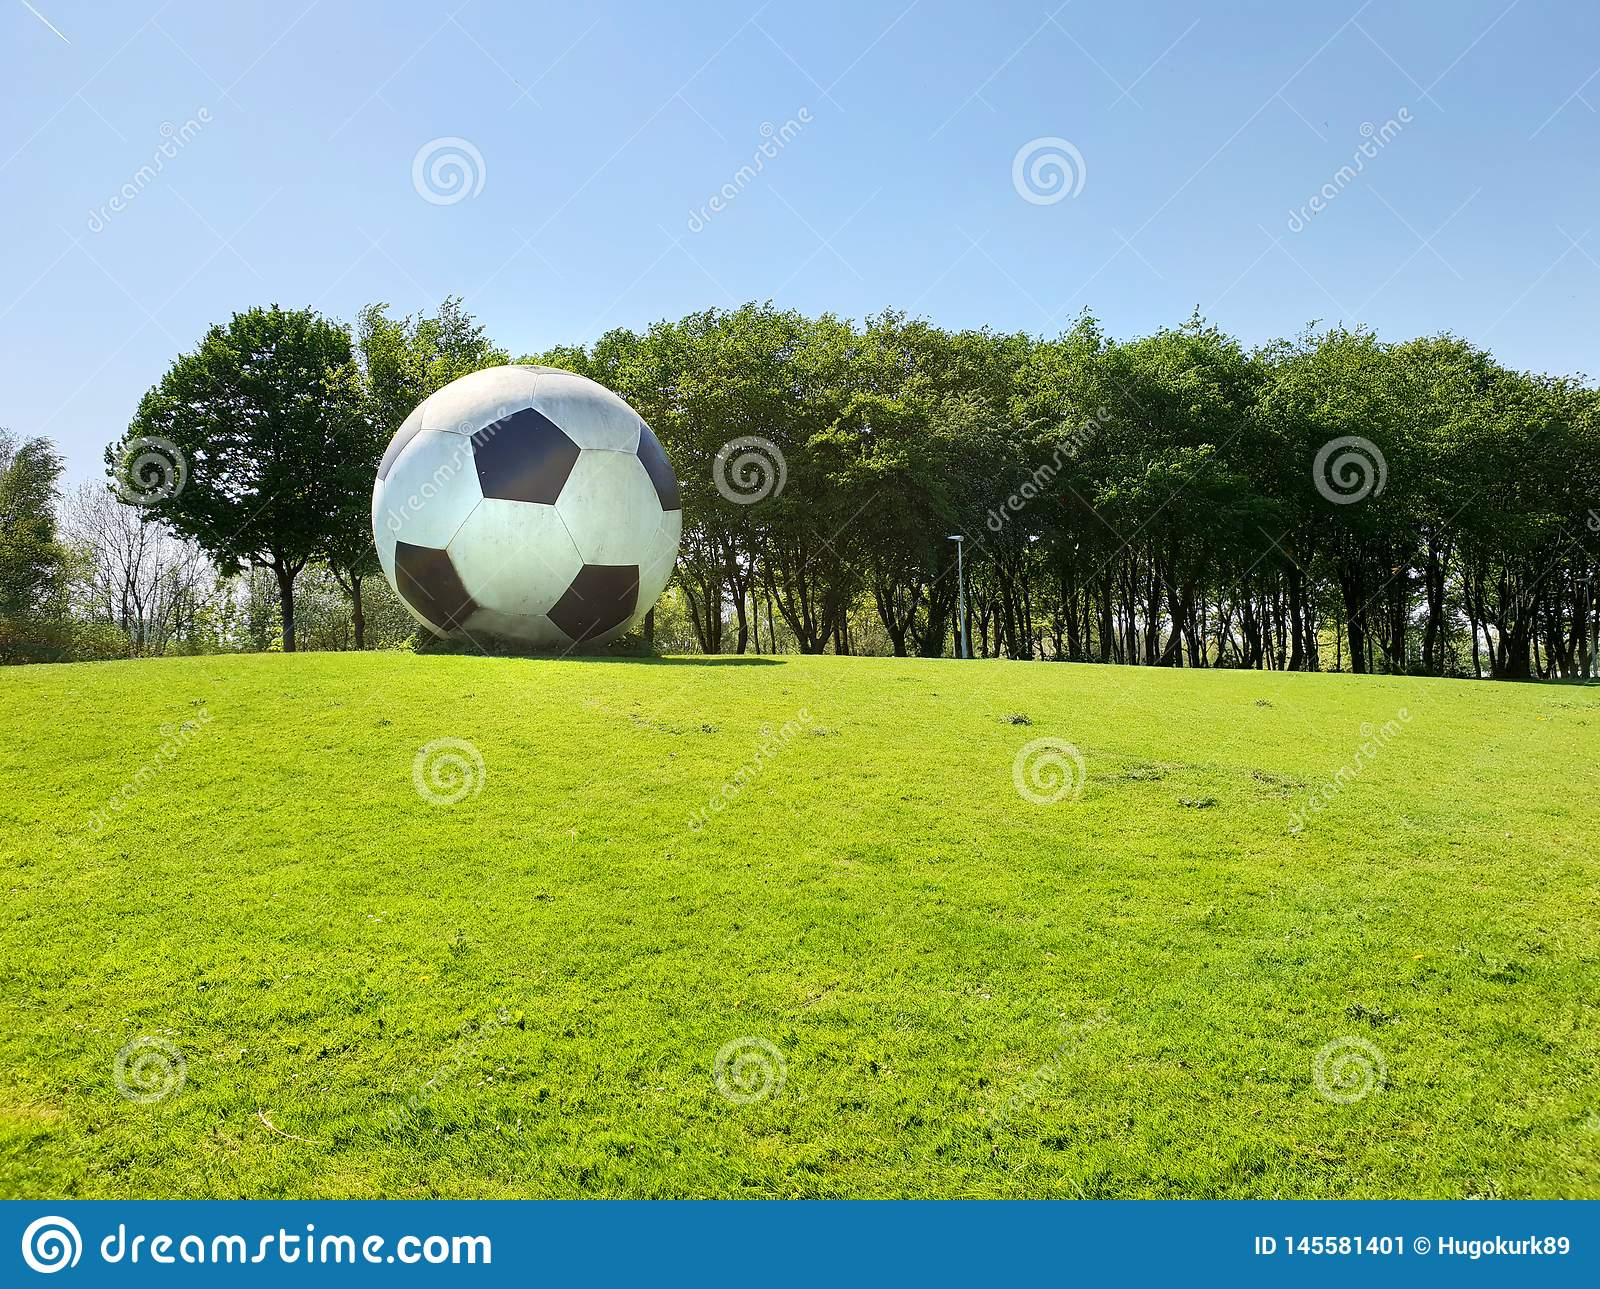 Oversized football as an artwork in public space